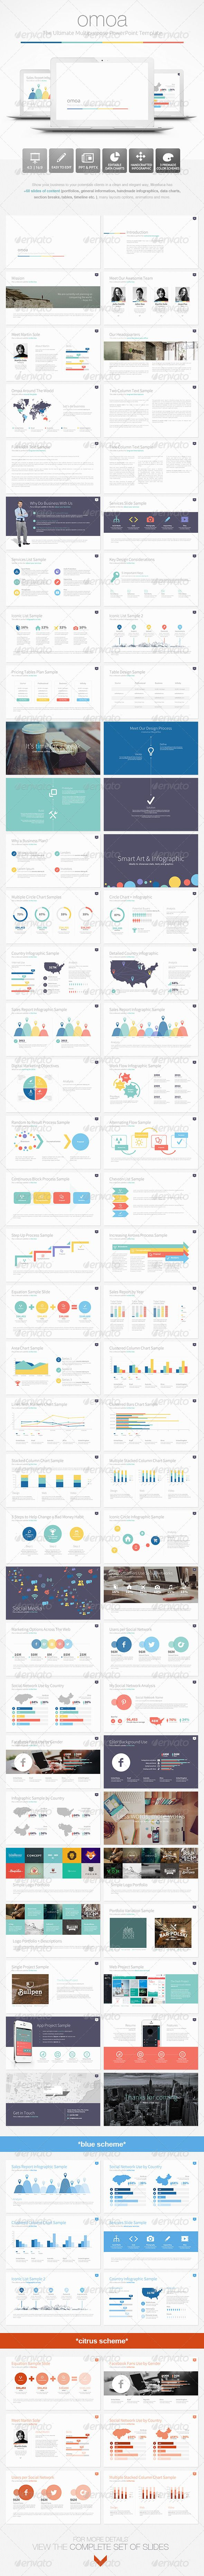 Omoa   Ultimate Multipurpose PowerPoint Template (Powerpoint Templates) #Powerpoint #Powerpoint_Template #Presentation